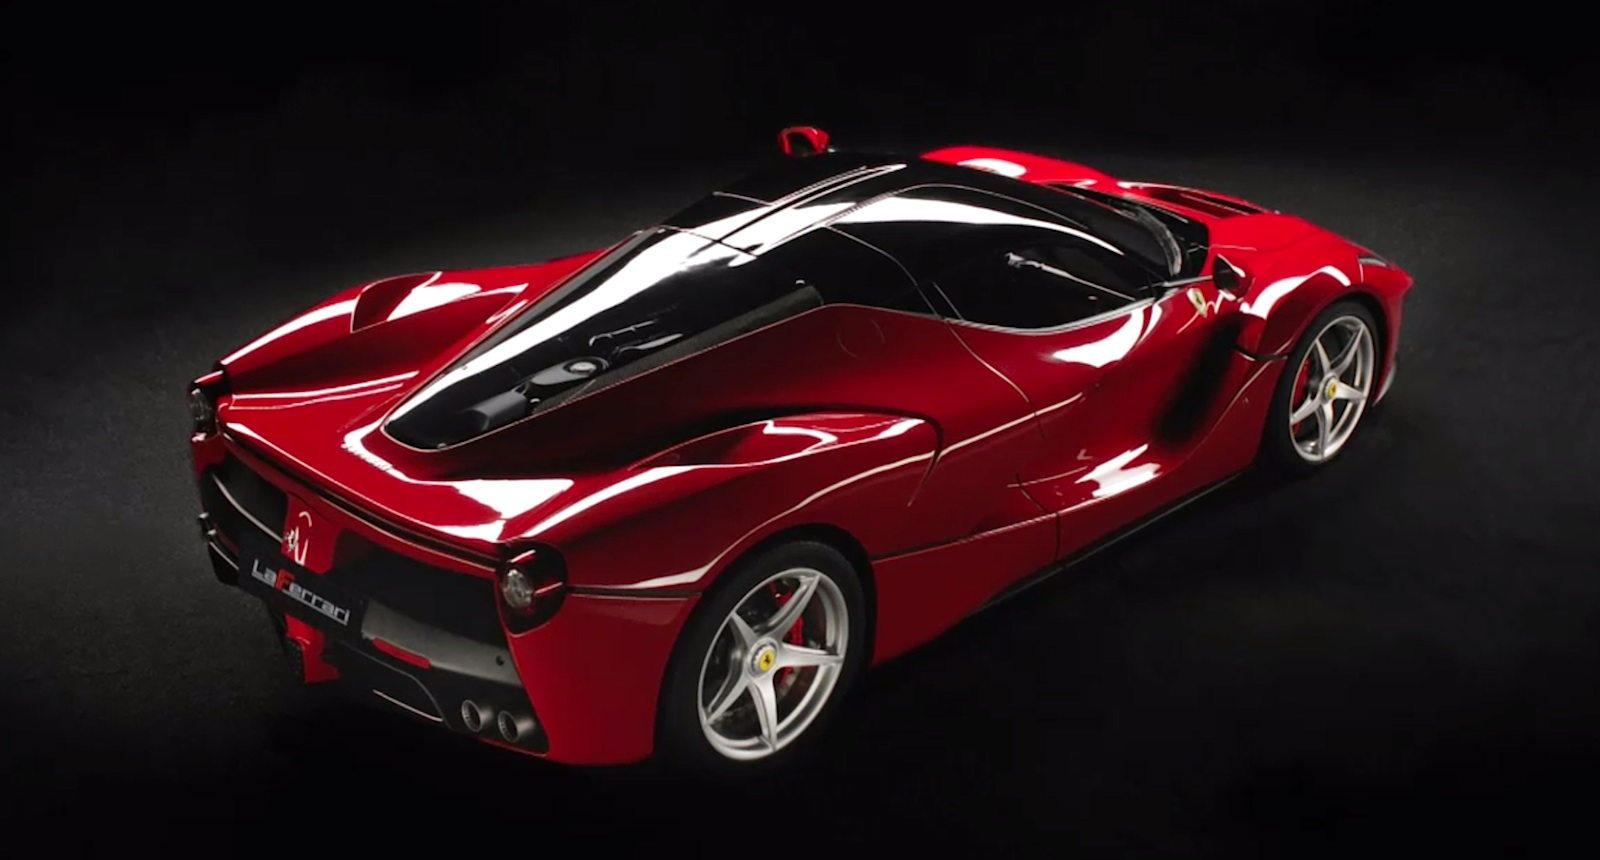 Laferrari Gallery Photos 1 Of 28